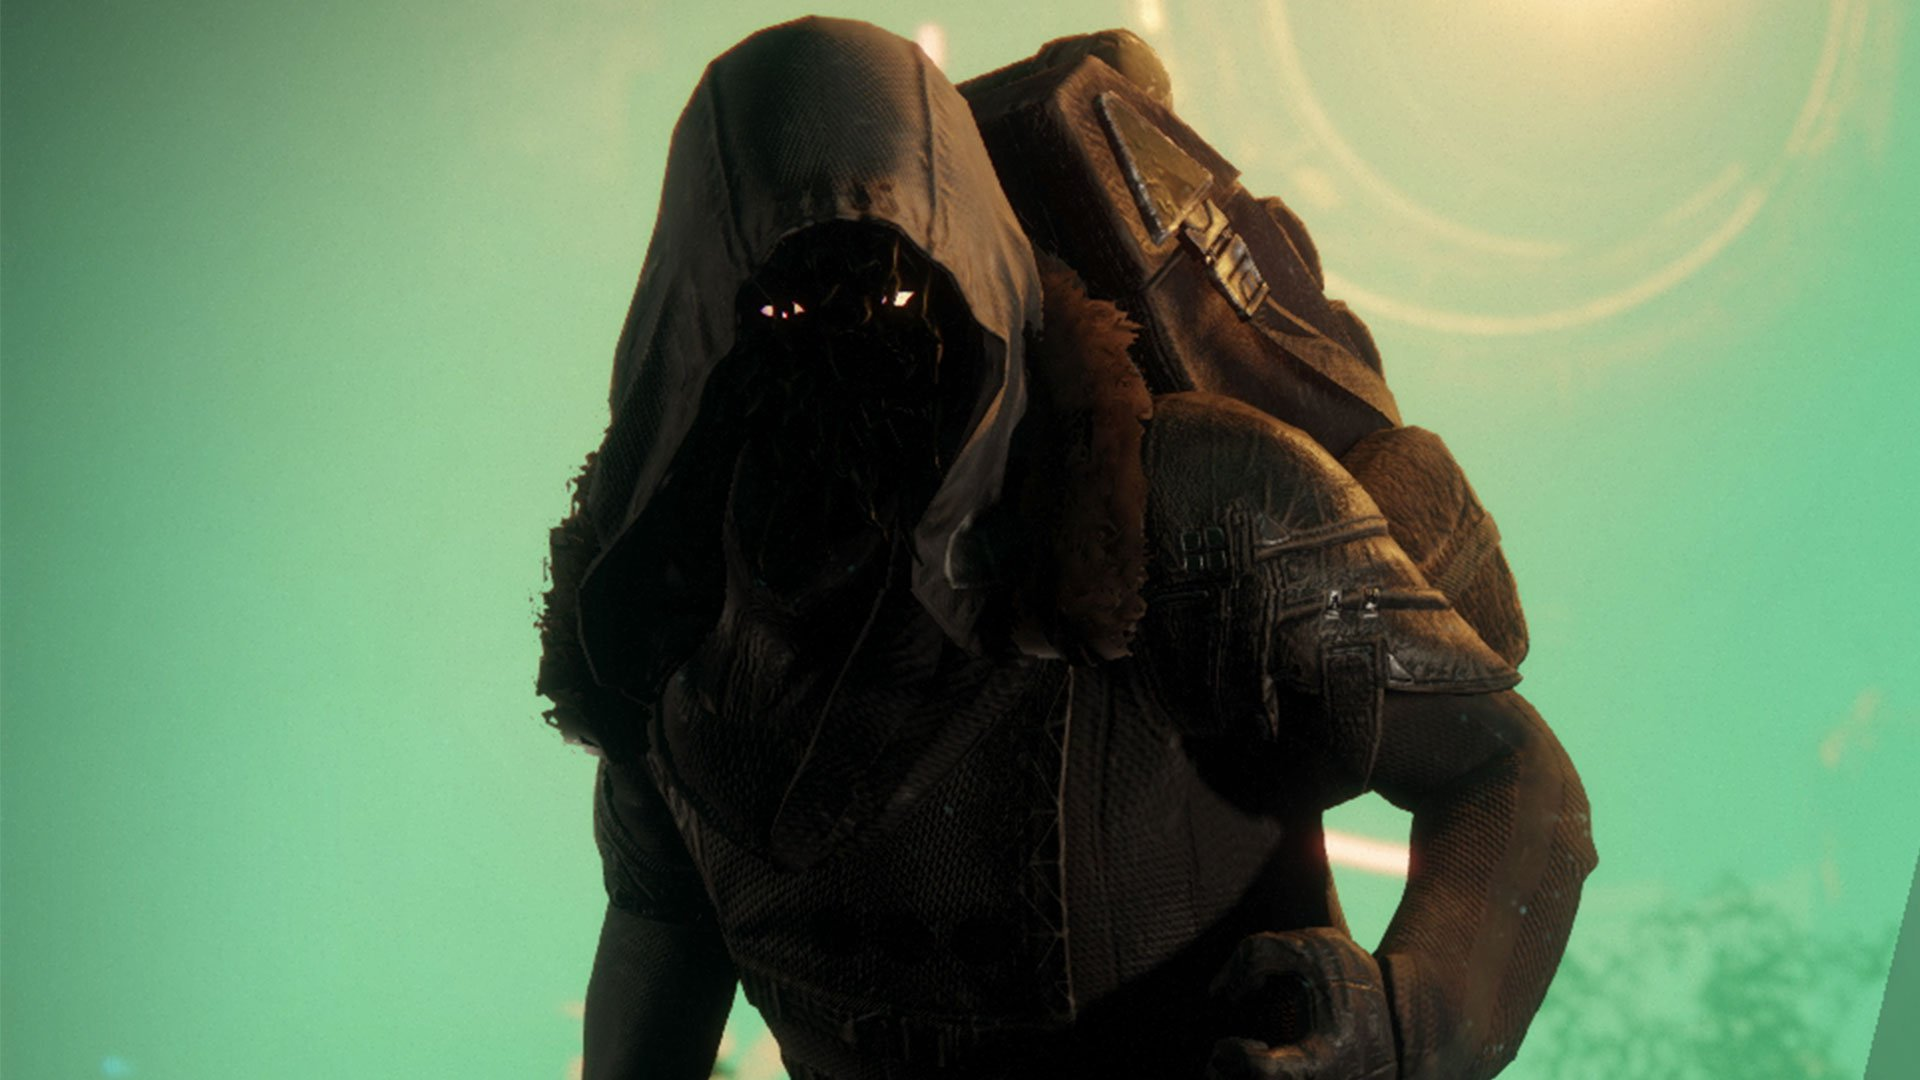 During the week of February 22, Xur can be found on IO in a cave near Giant's Scar.